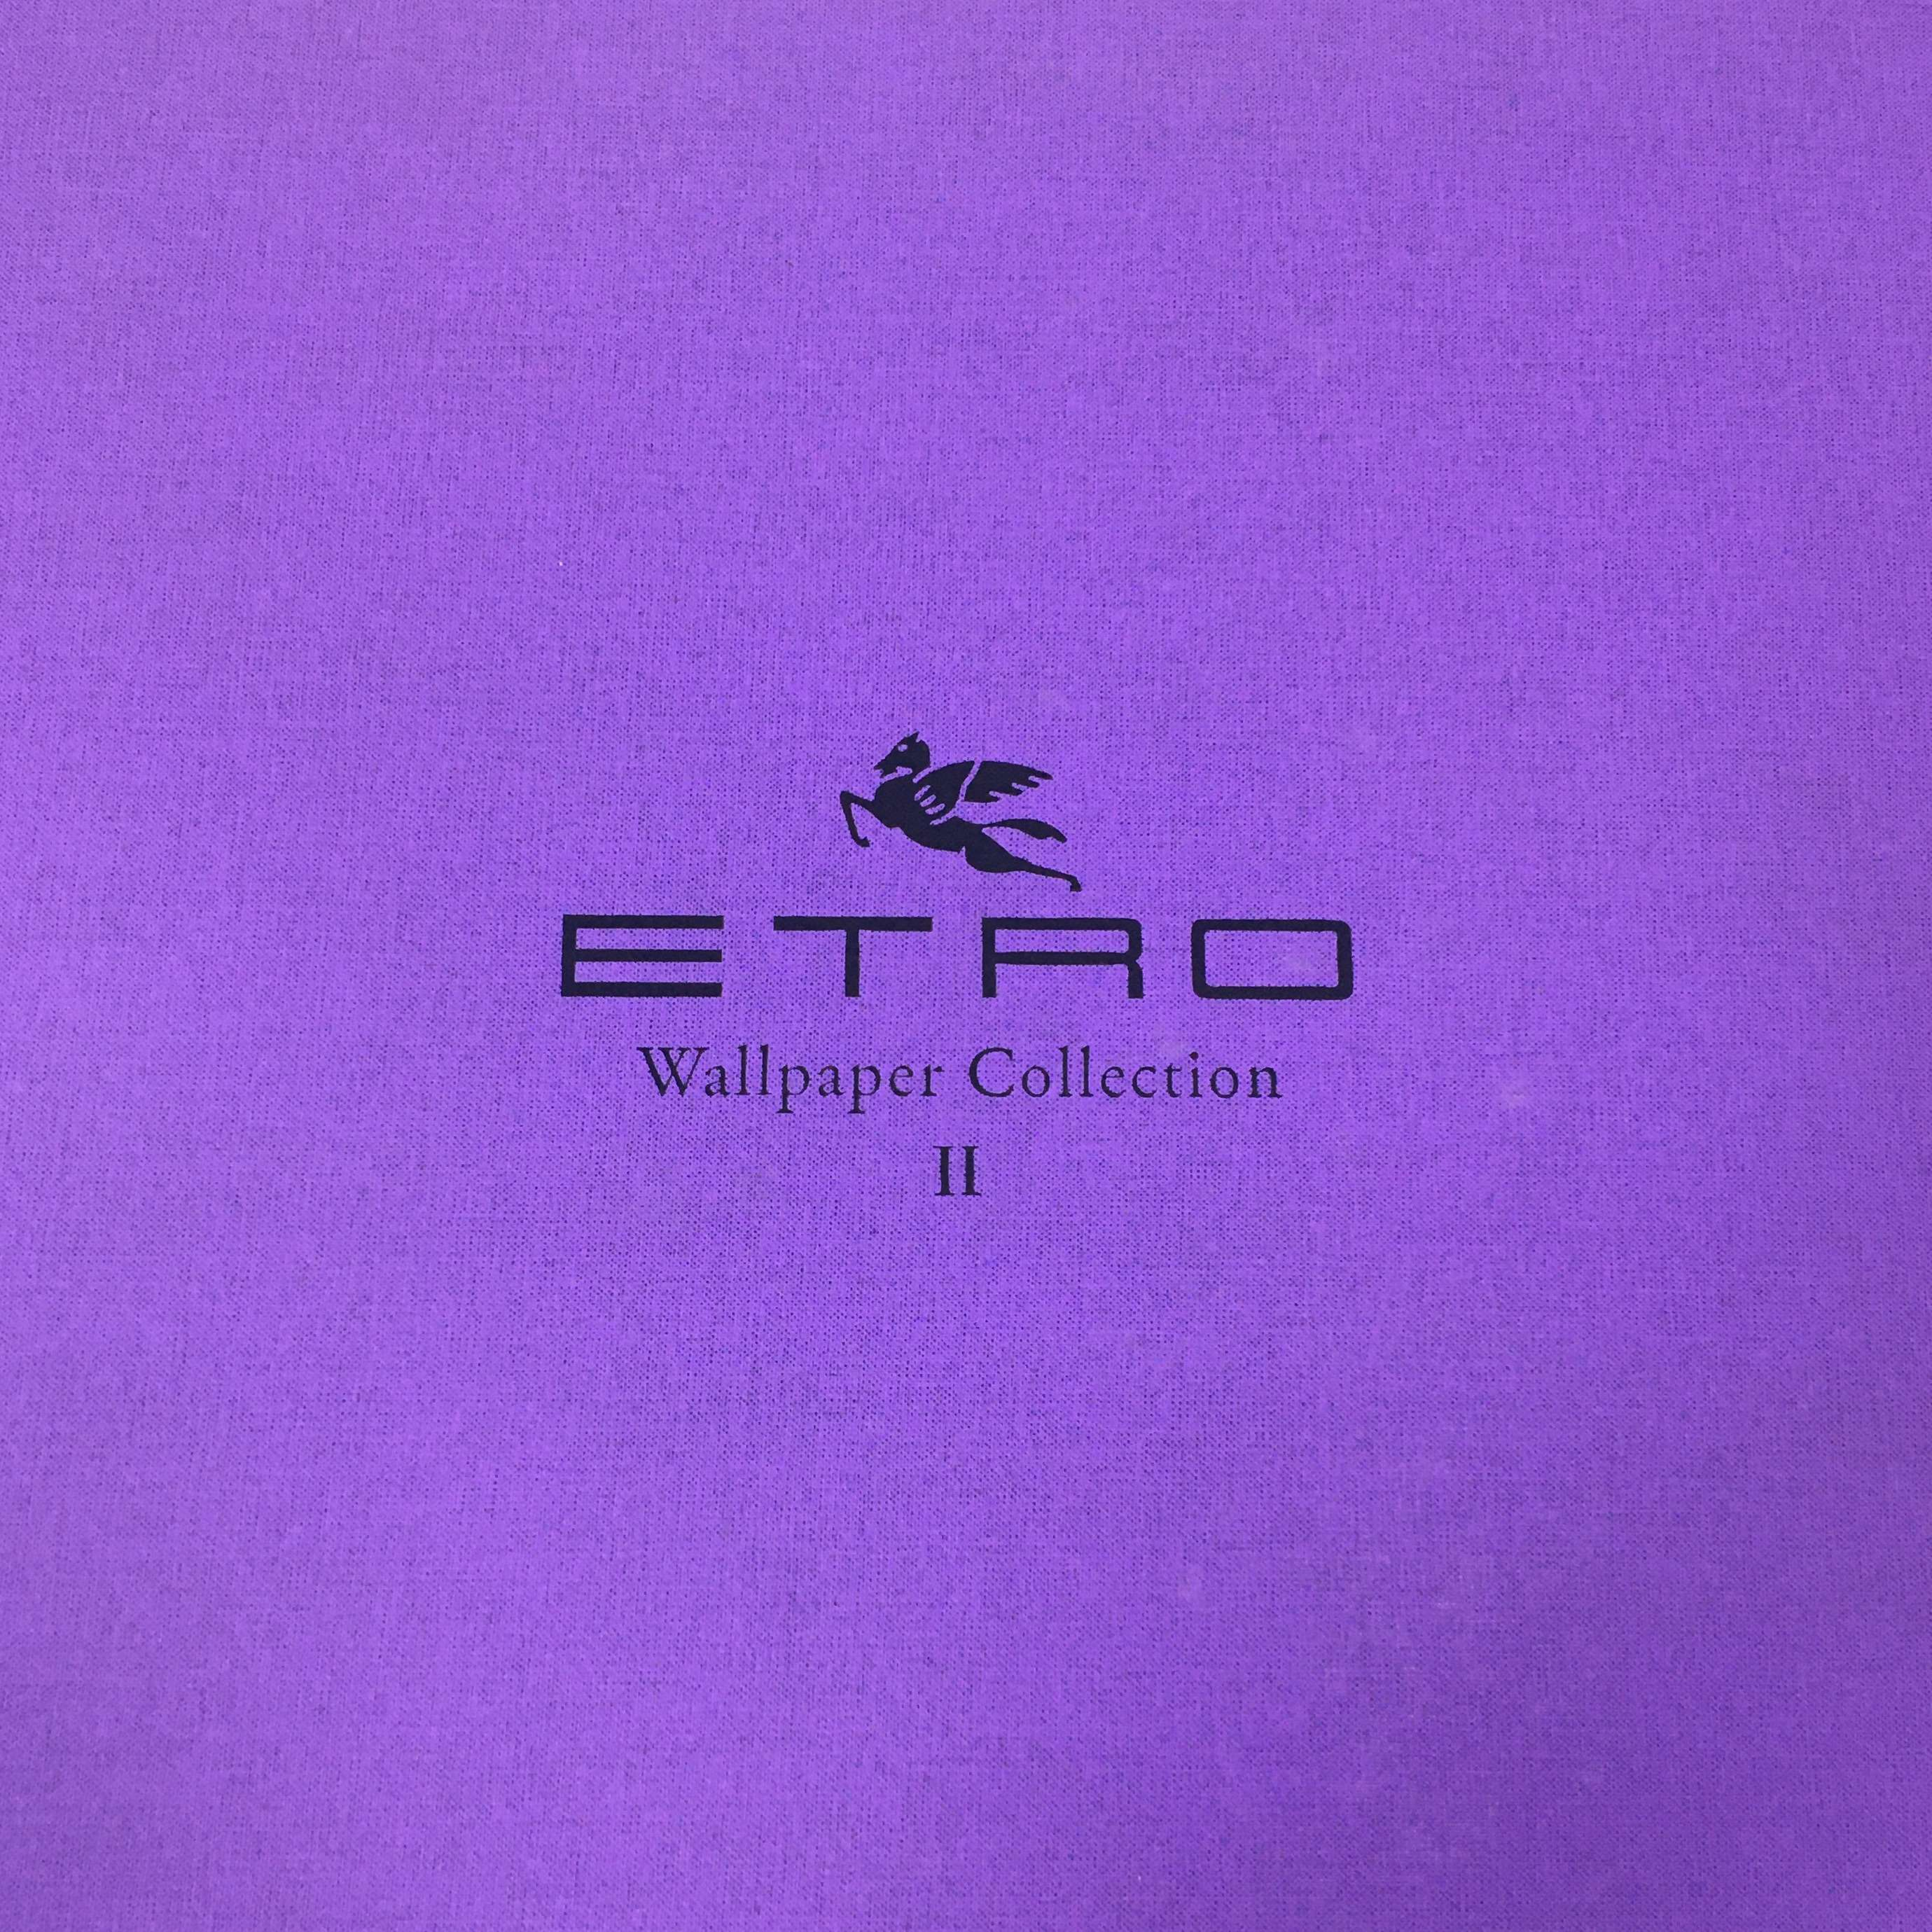 КАТАЛОГ ETRO WALLPAPER COLLECTION 2 ОТ RASCH УЖЕ У НАС! - avatar